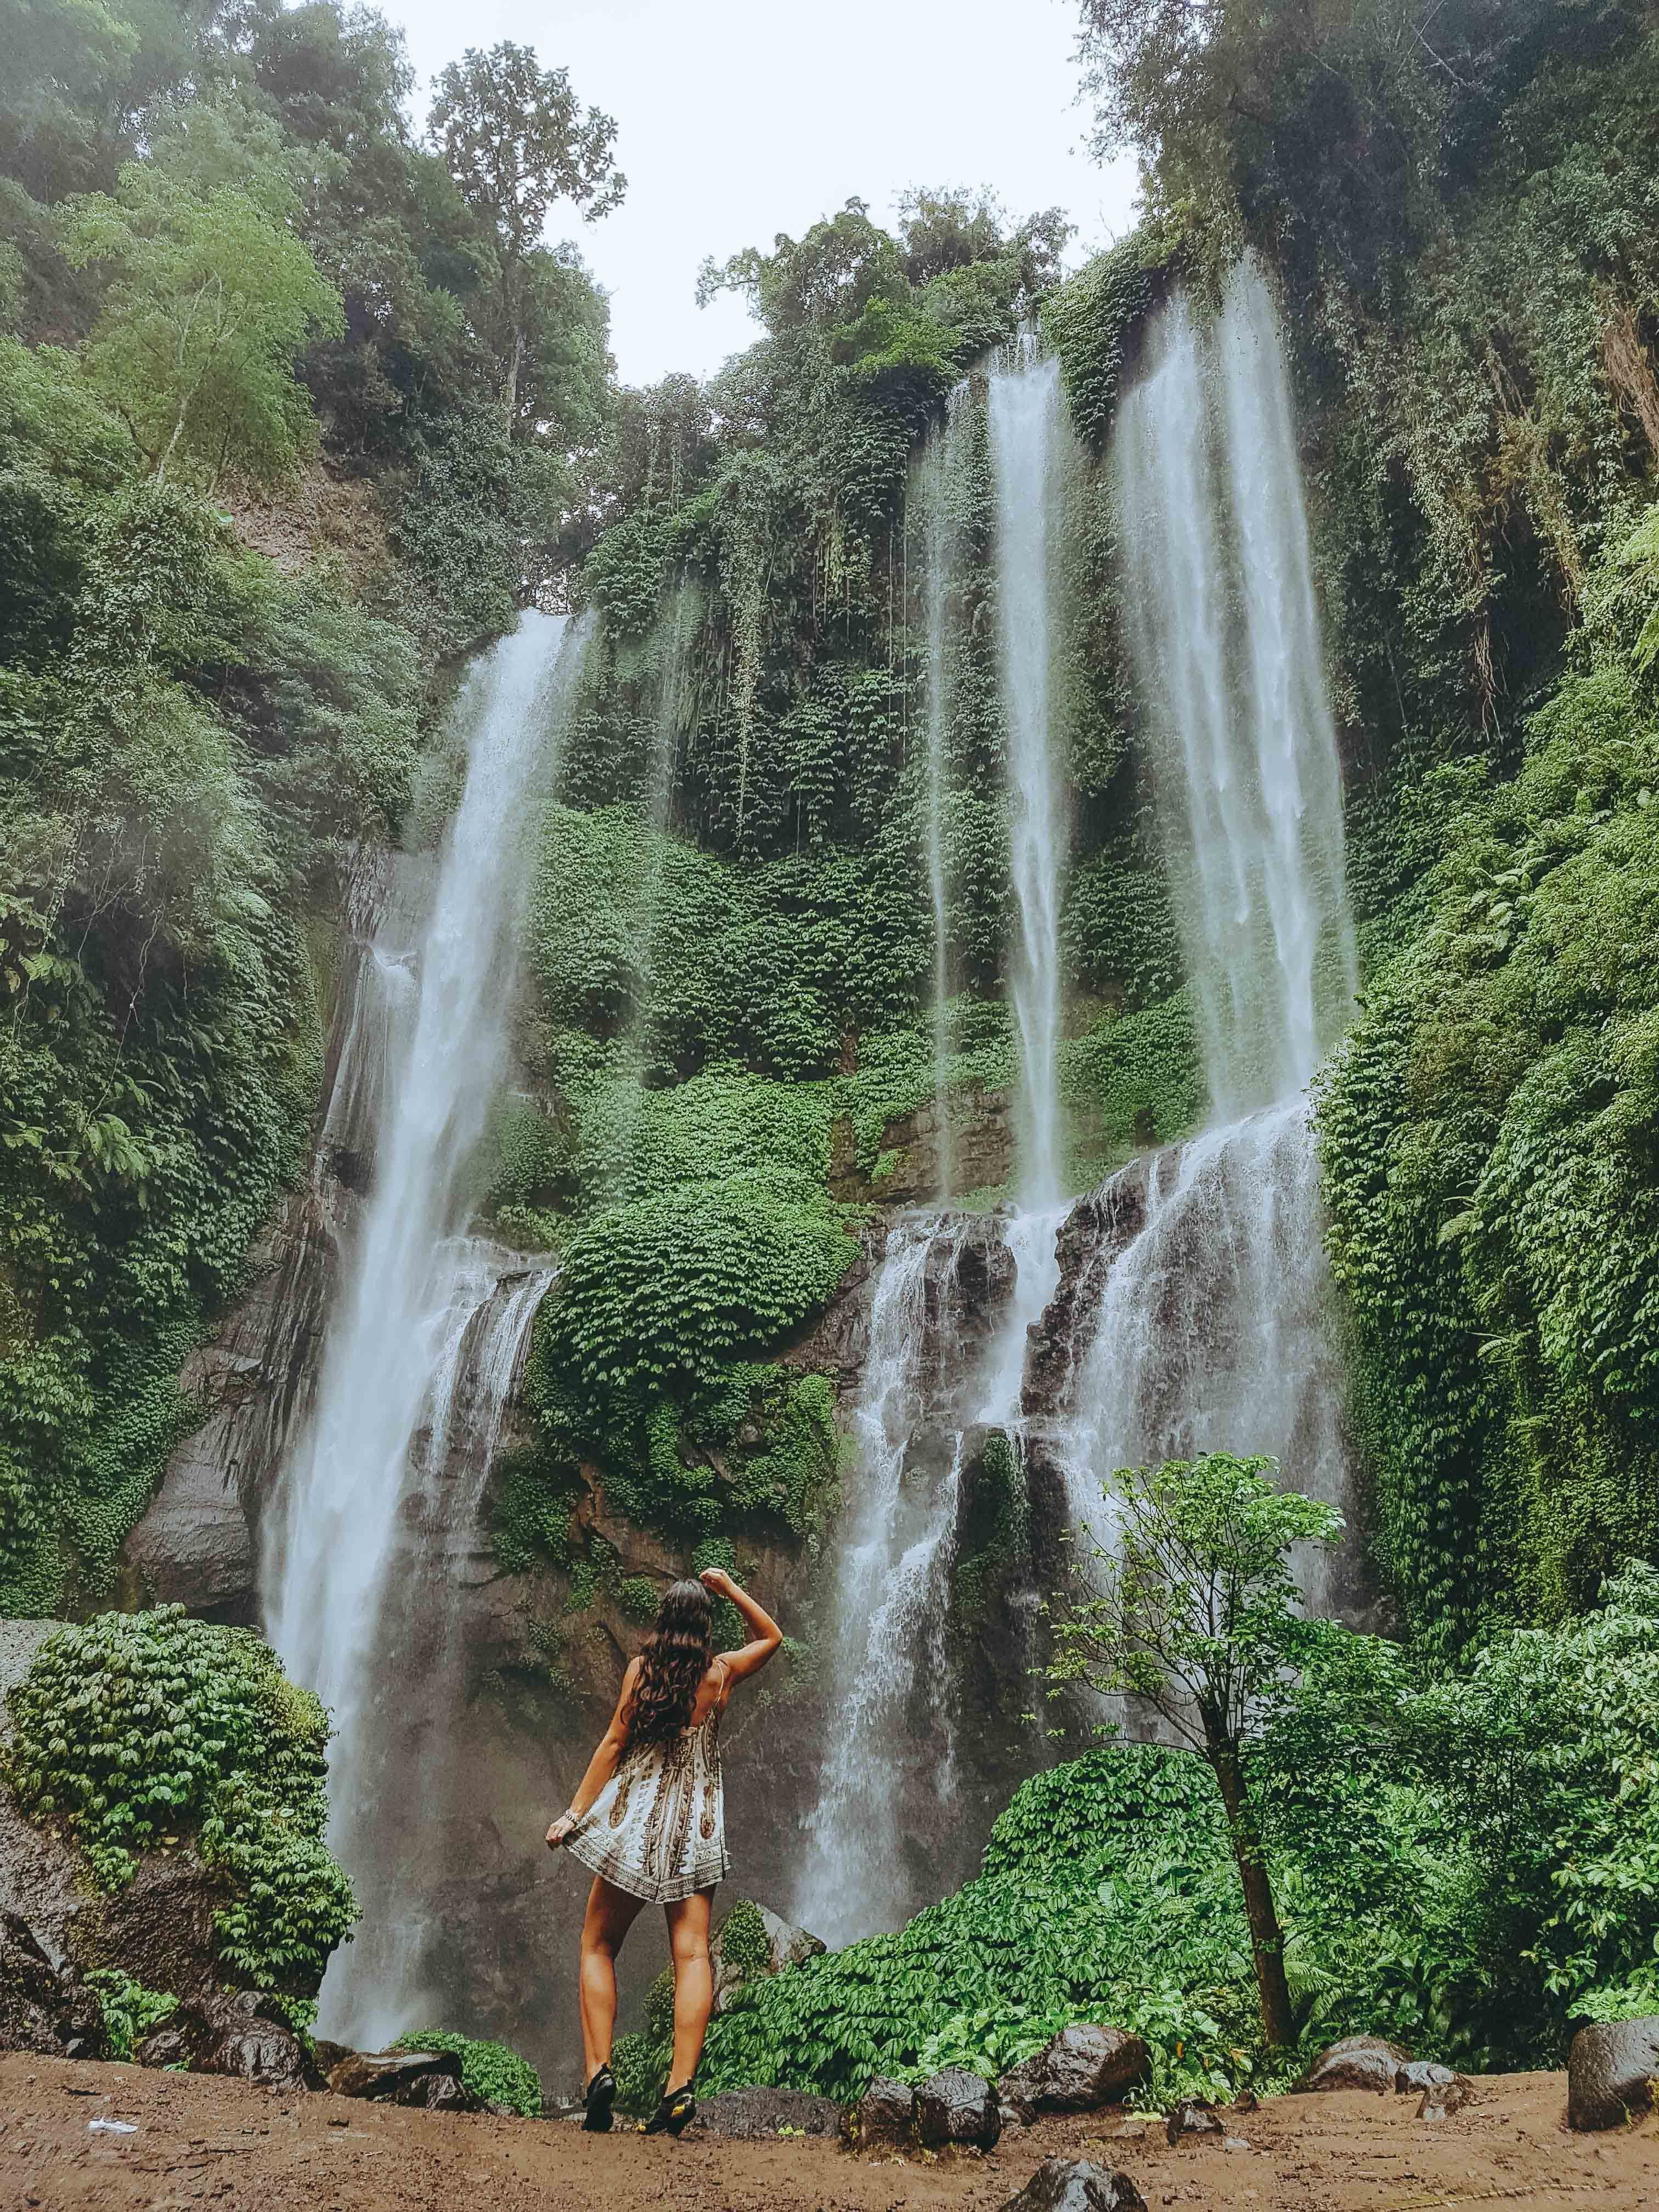 9 Amazing Things I Love About Bali  B A L I travel guide, what to expect ubud bali new to bali ? this is why you should visit ubud and how to spend a day in ubud. we will take you to ubud to see what it is like here and why its loved by many tourists. in this vo we will ., bali travel gu on tripadvisor theres a lot to chooseom in terms of everything when ites to bali . we travel there once a year and have done for some time now i think its only fair to share your tips and knowledge as thats